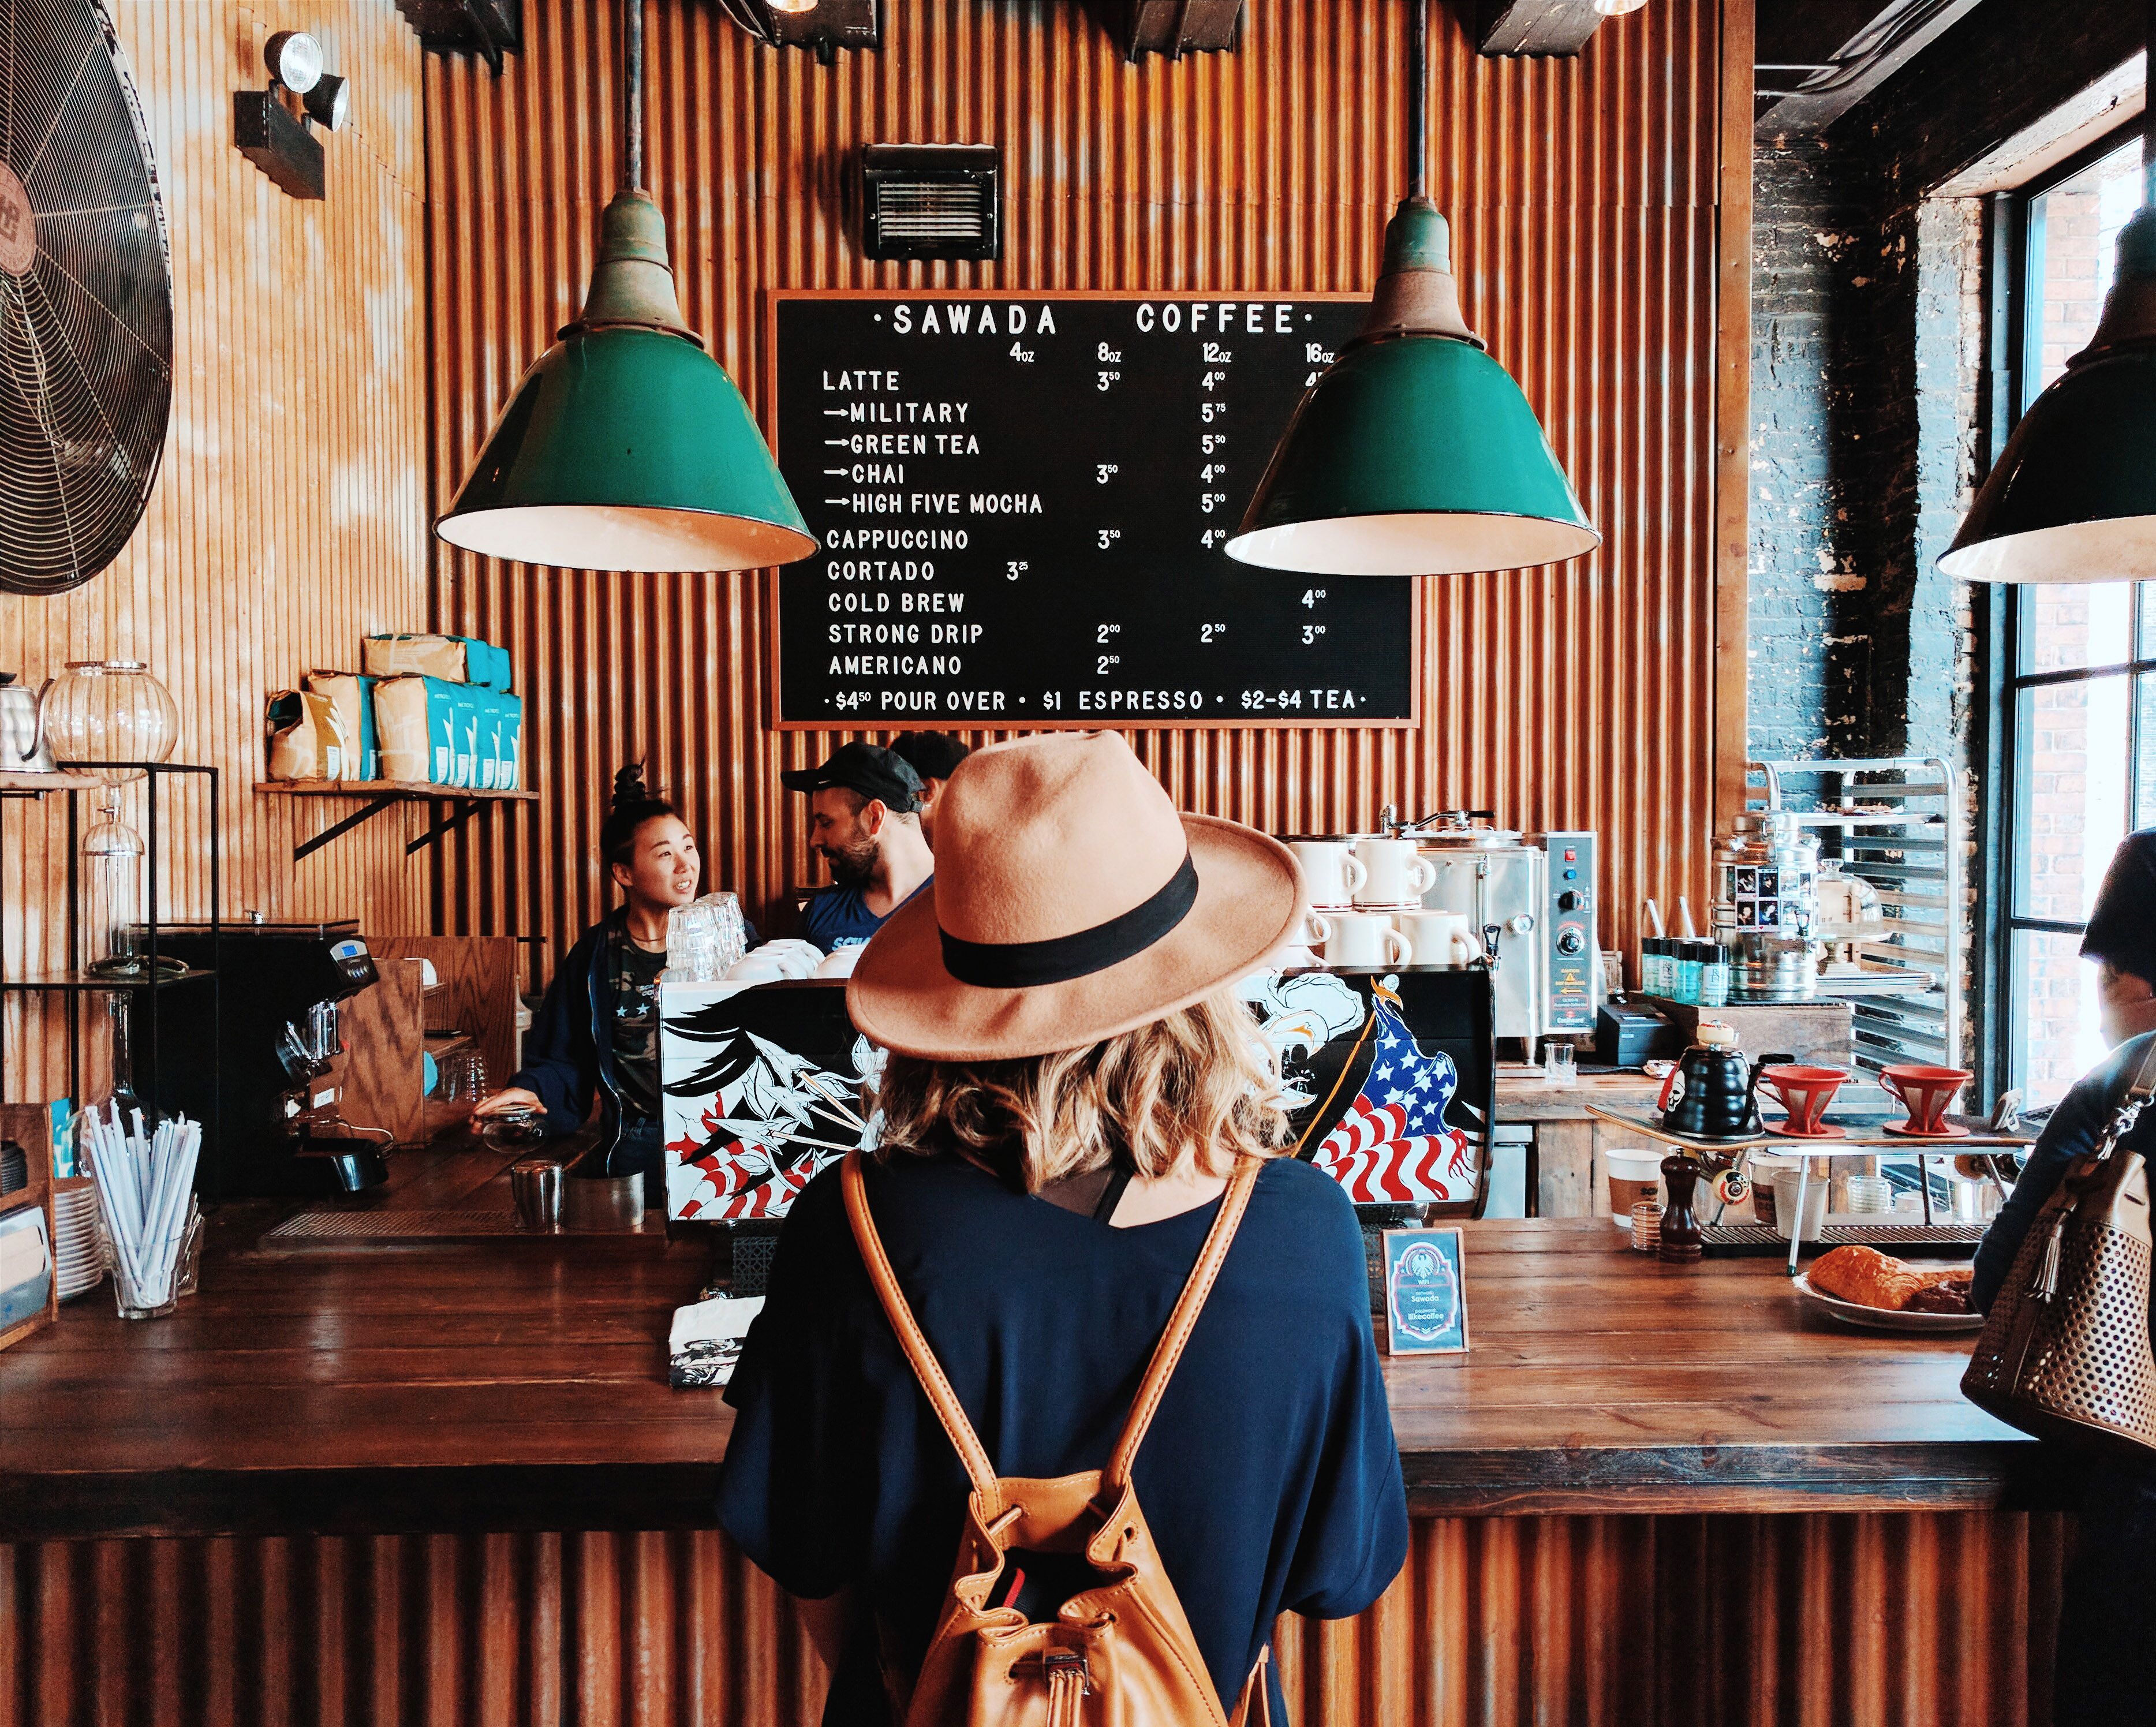 People in a Coffee Shop image - Free stock photo - Public Domain ...